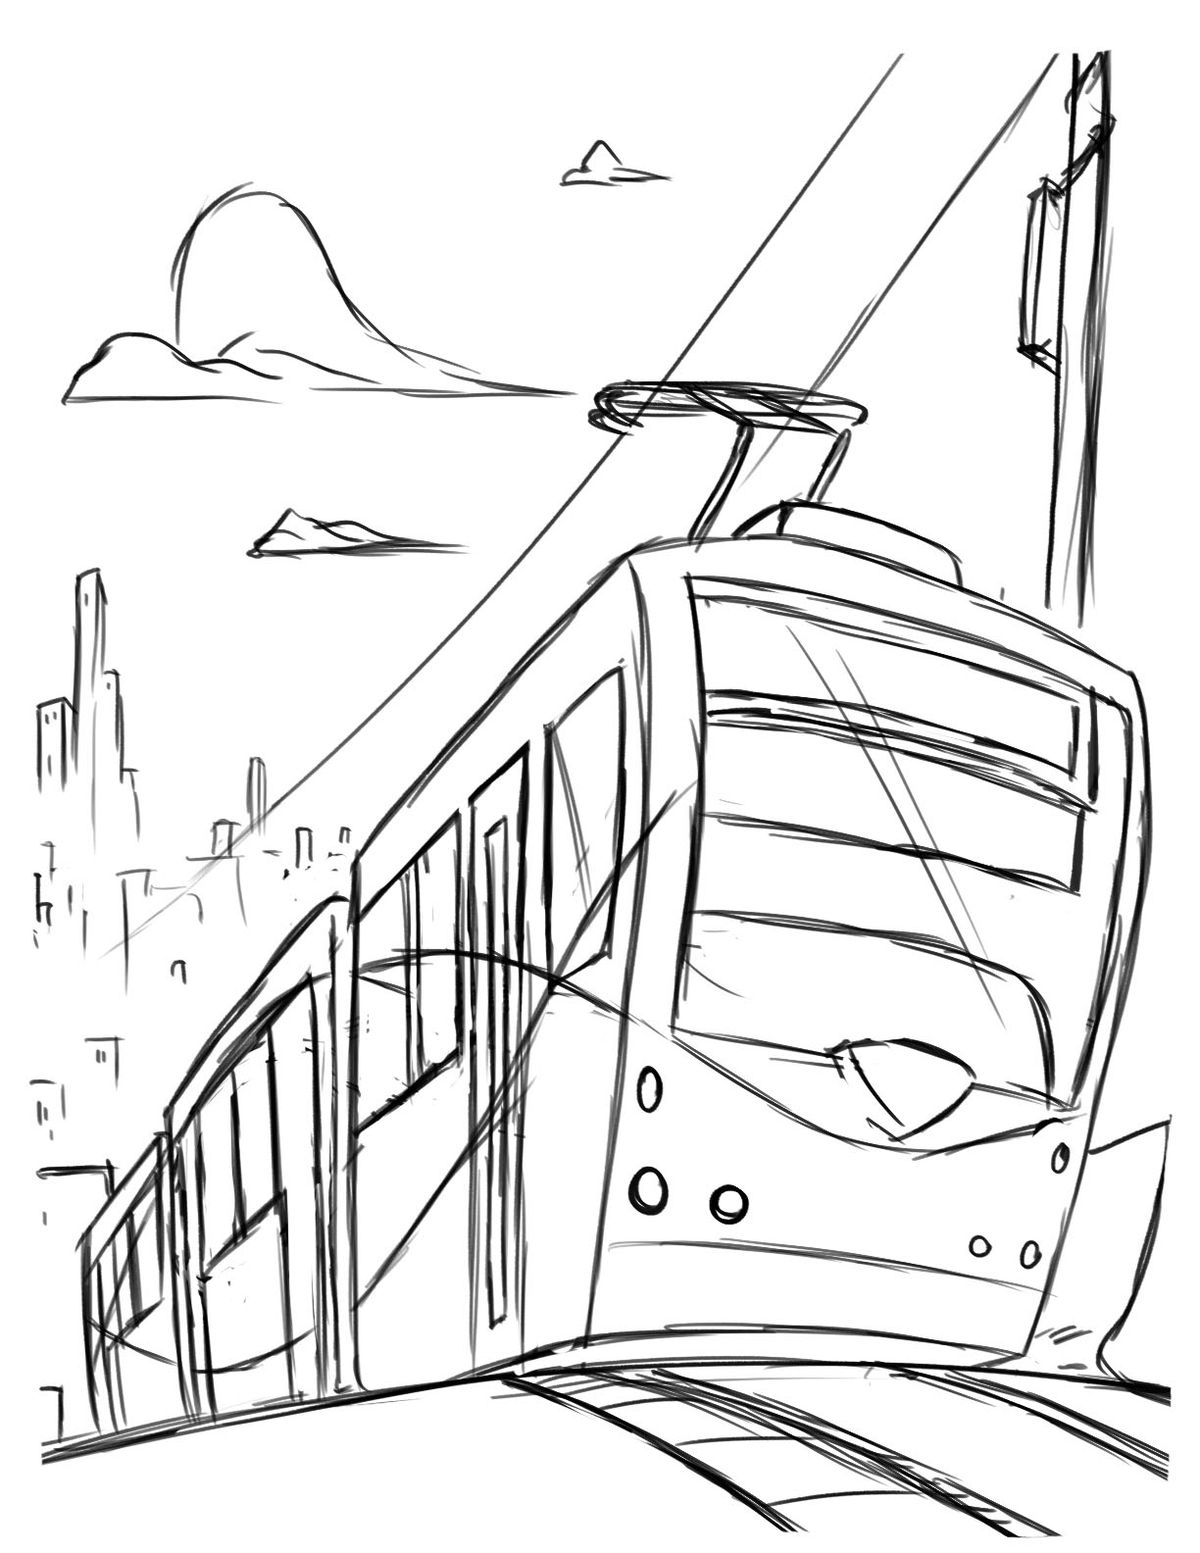 This new coloring book is perfect for transit lovers in D